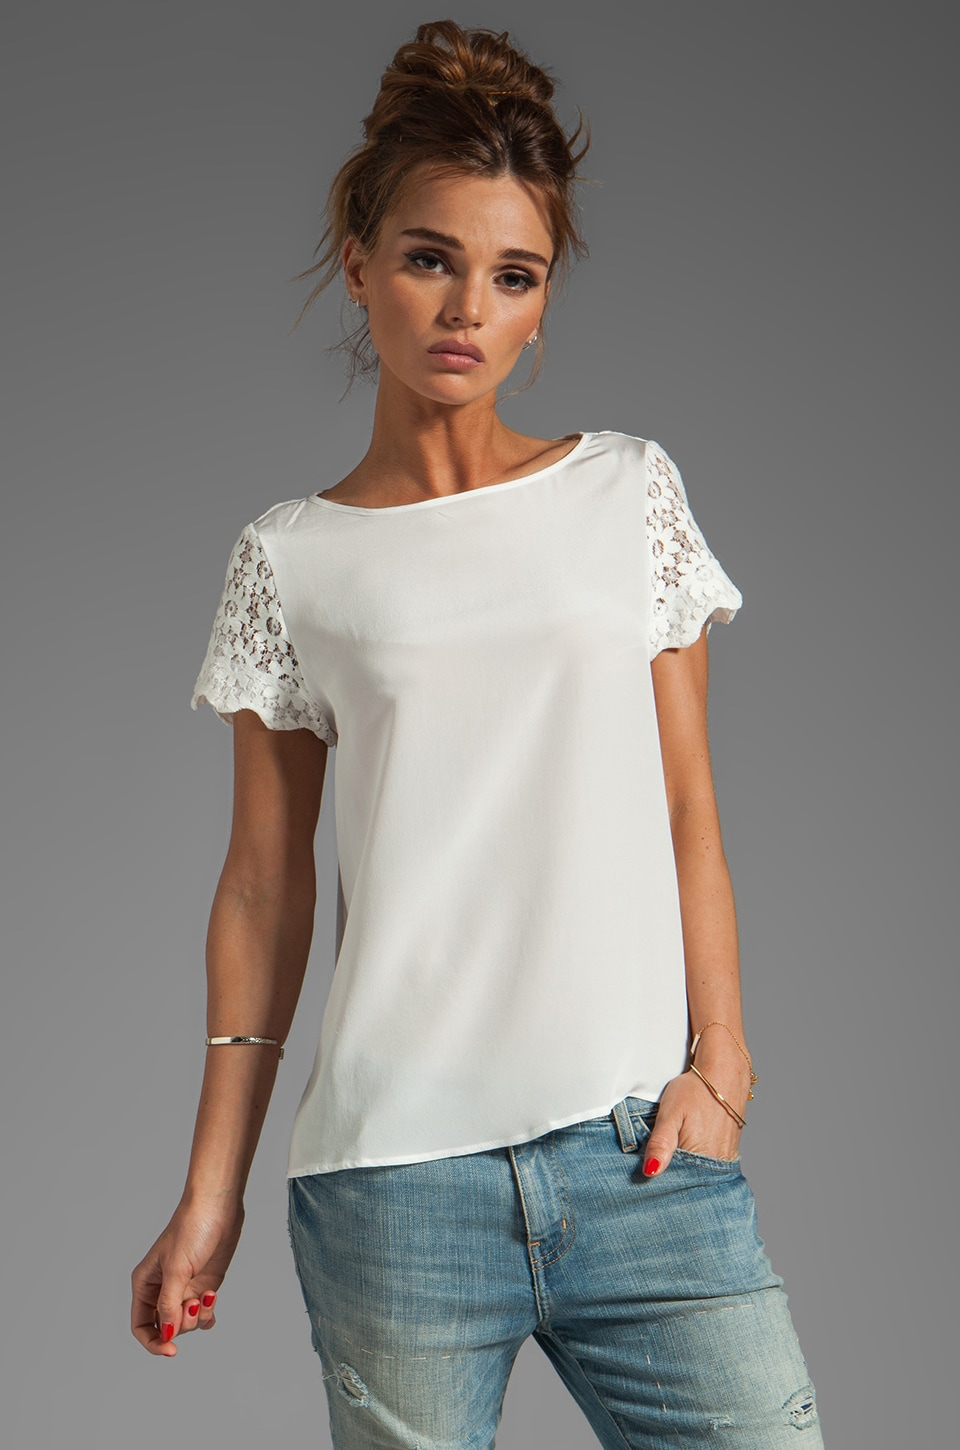 Heather Lace Scallop Sleeve Drape Tee in White